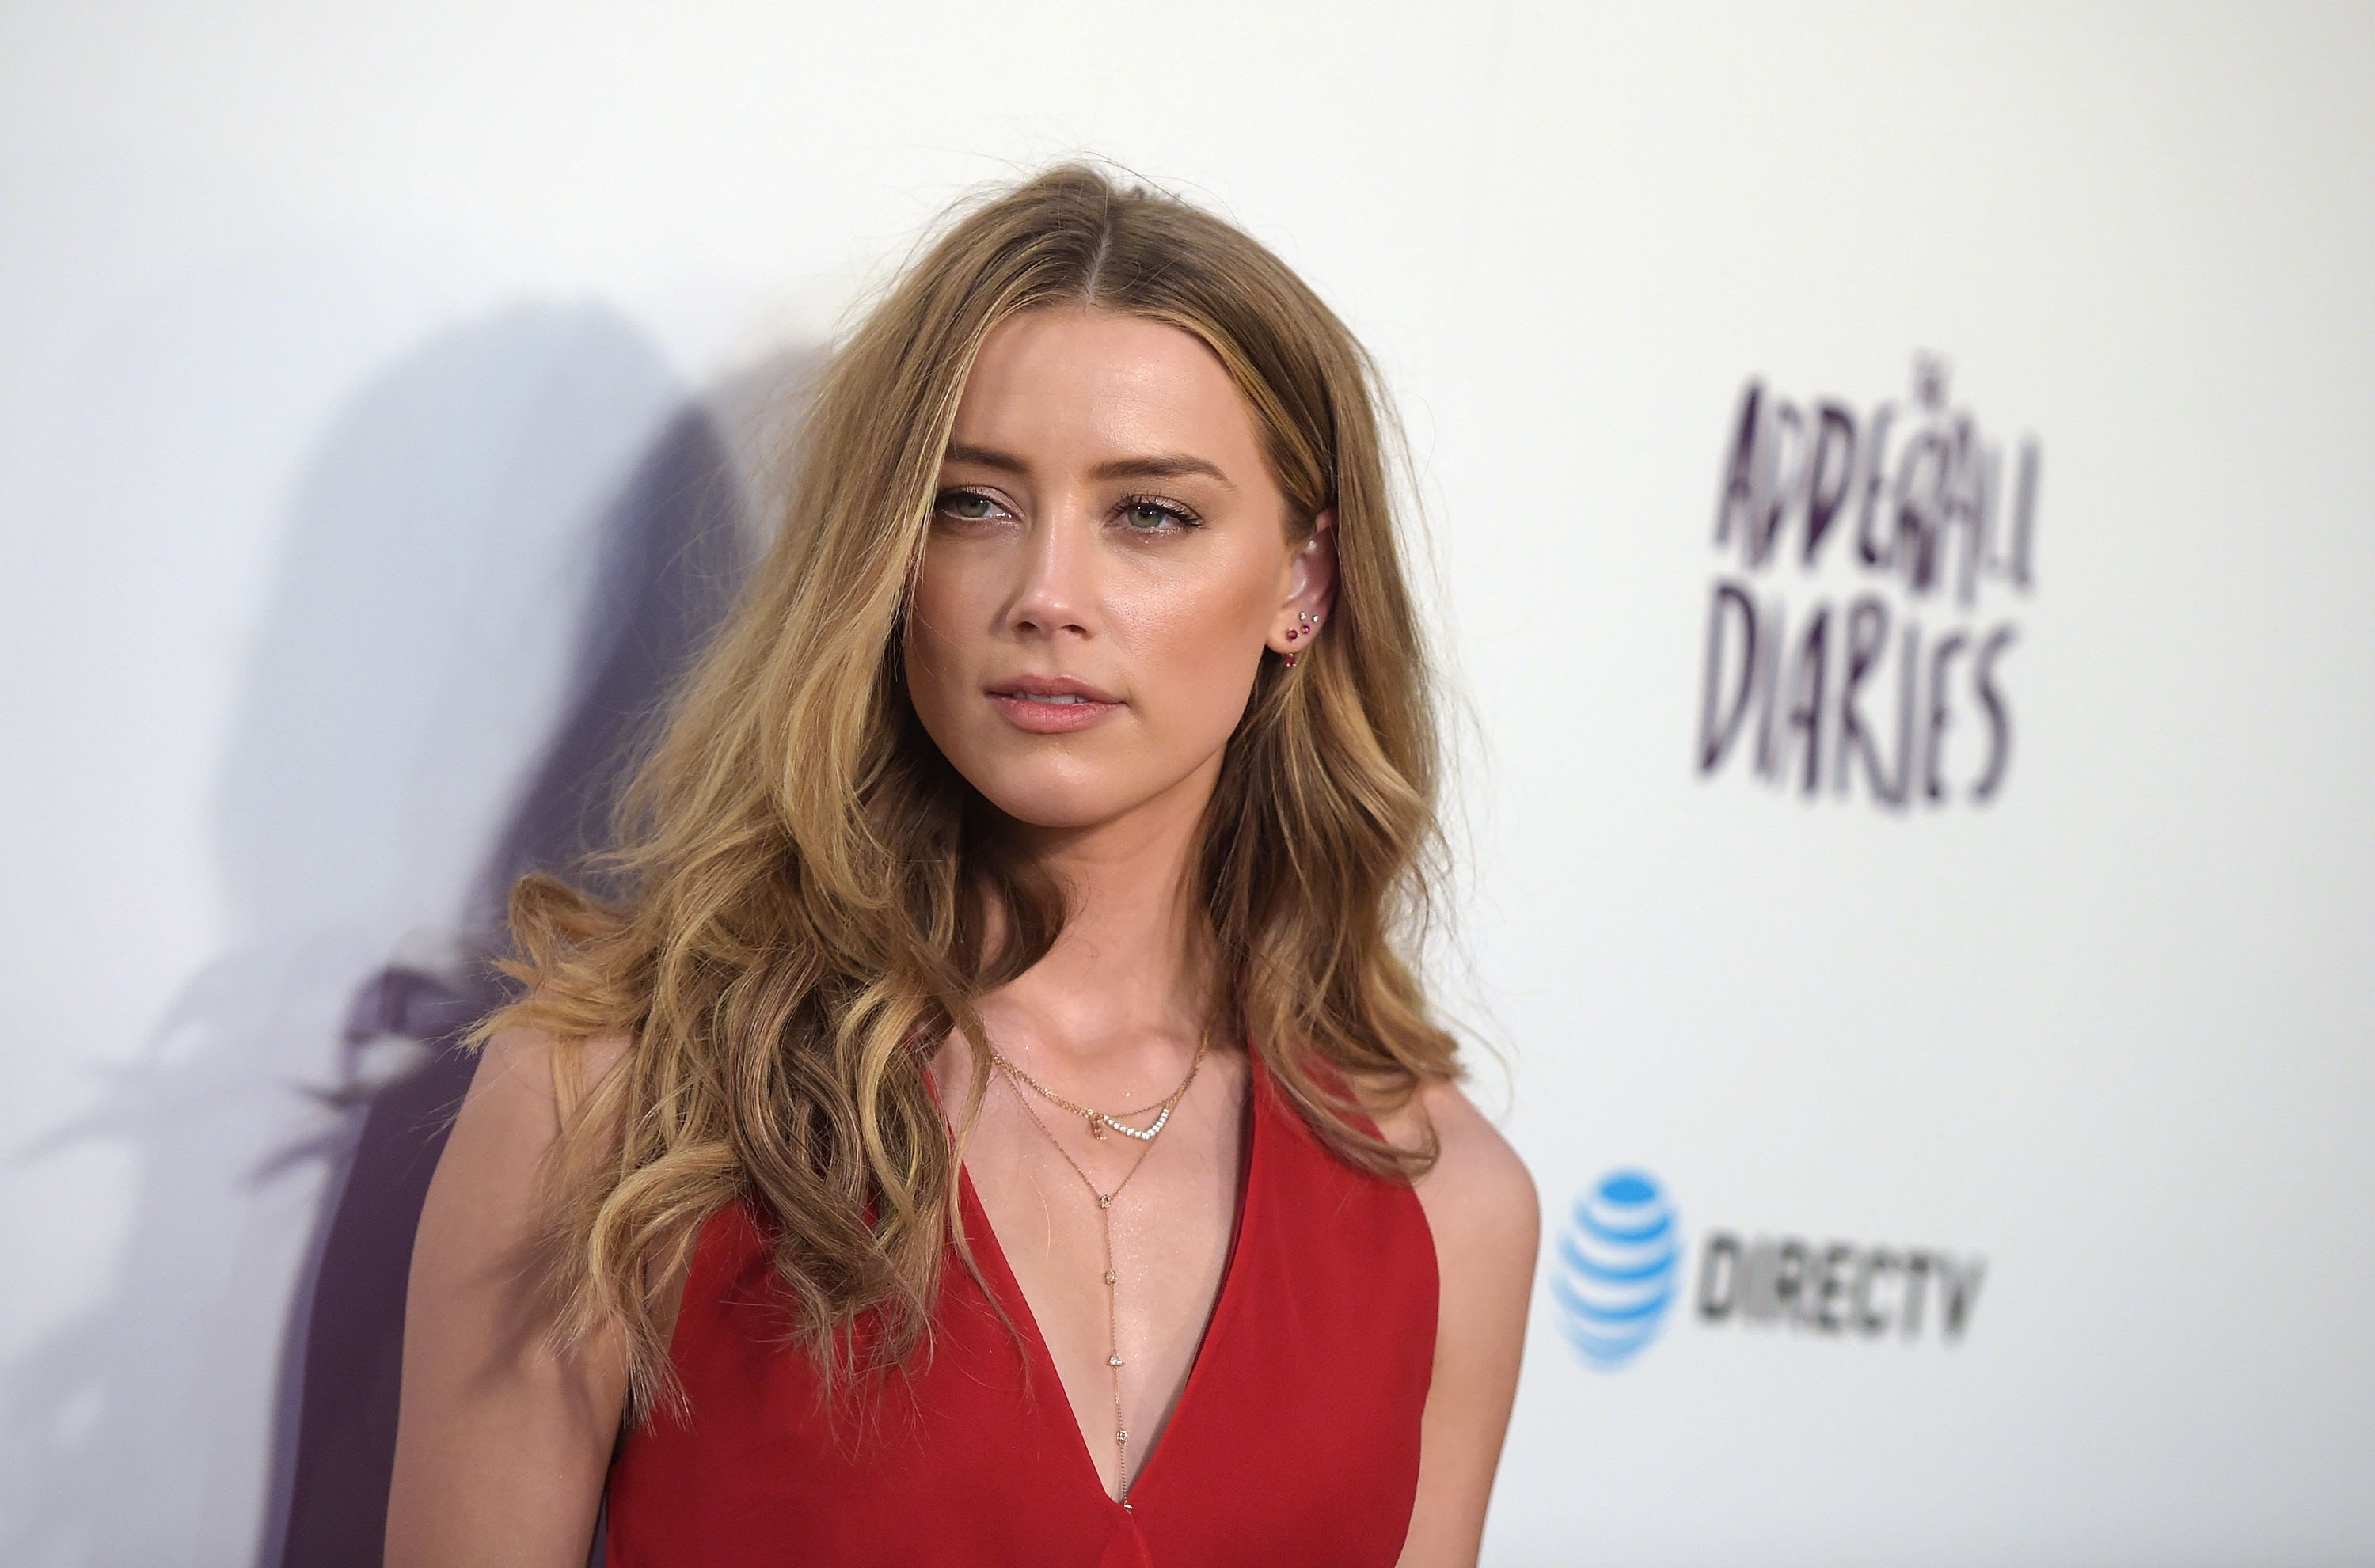 Pics Show Message Johnny Depp Wrote To Amber Heard In His Own Blood heard